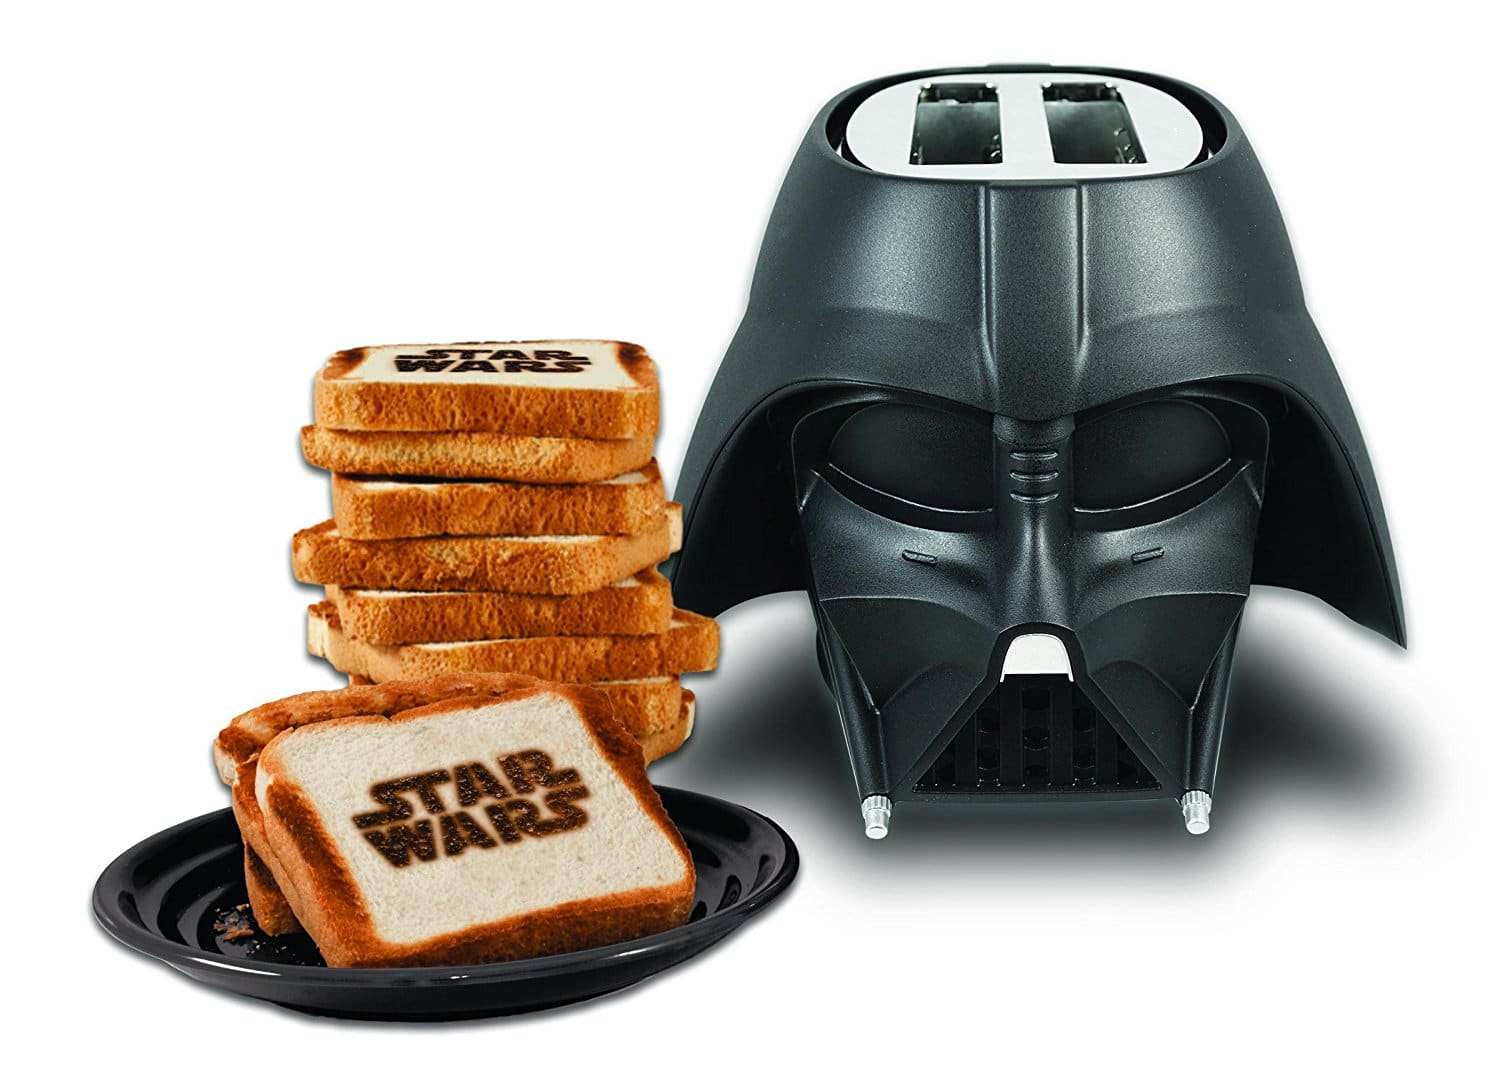 Perfect Star Wars gift ideas for a cook